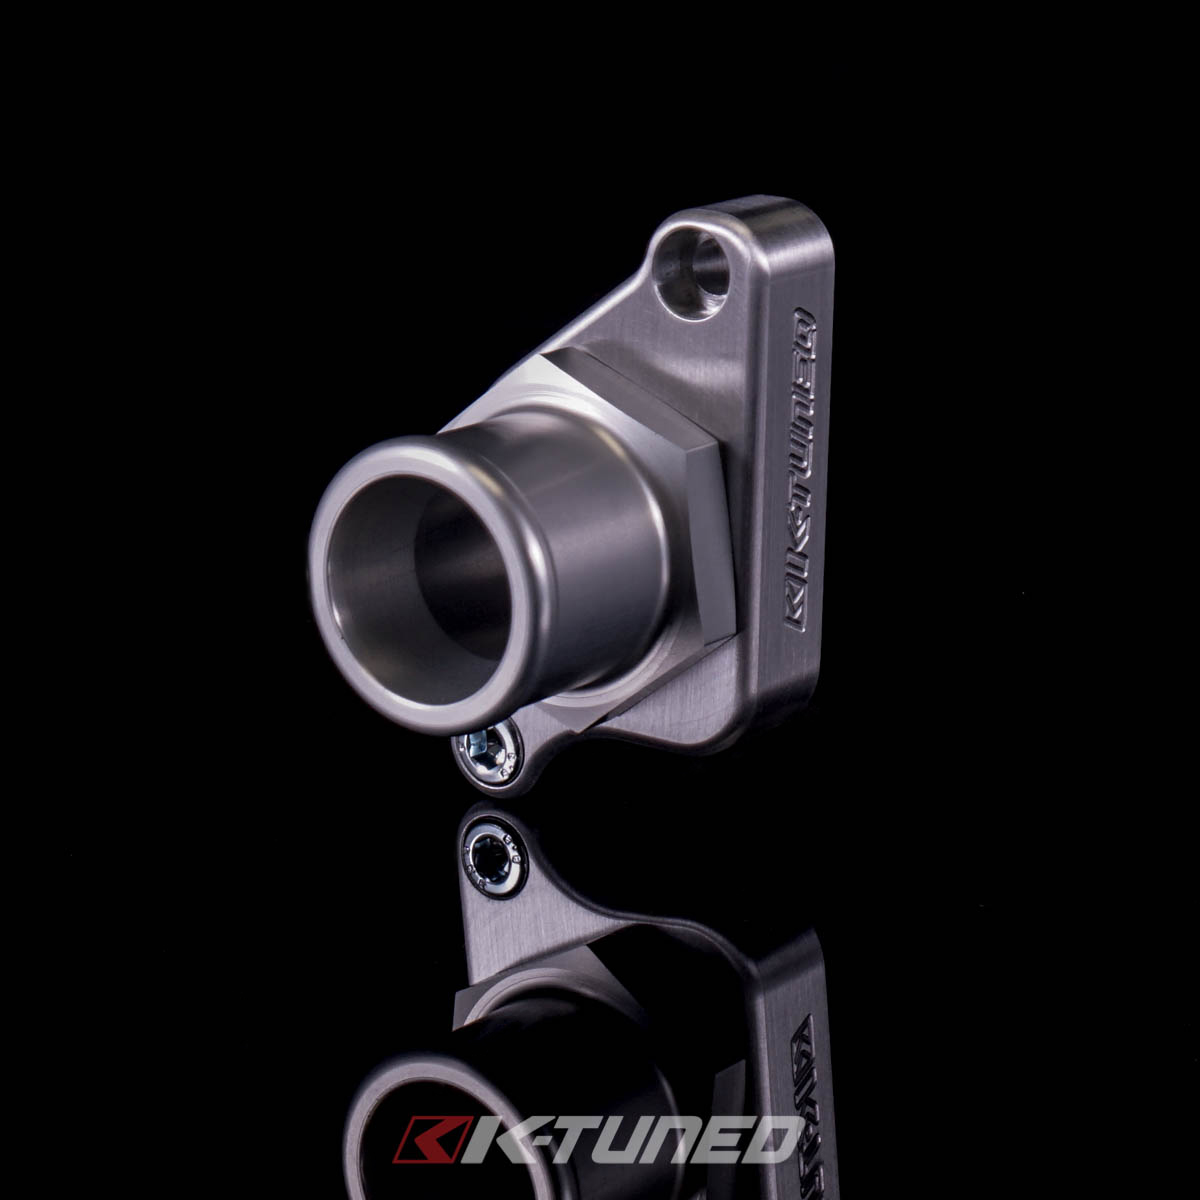 K-Tuned 94-01 Integra Upper Coolant Housing (Hose Fitting)